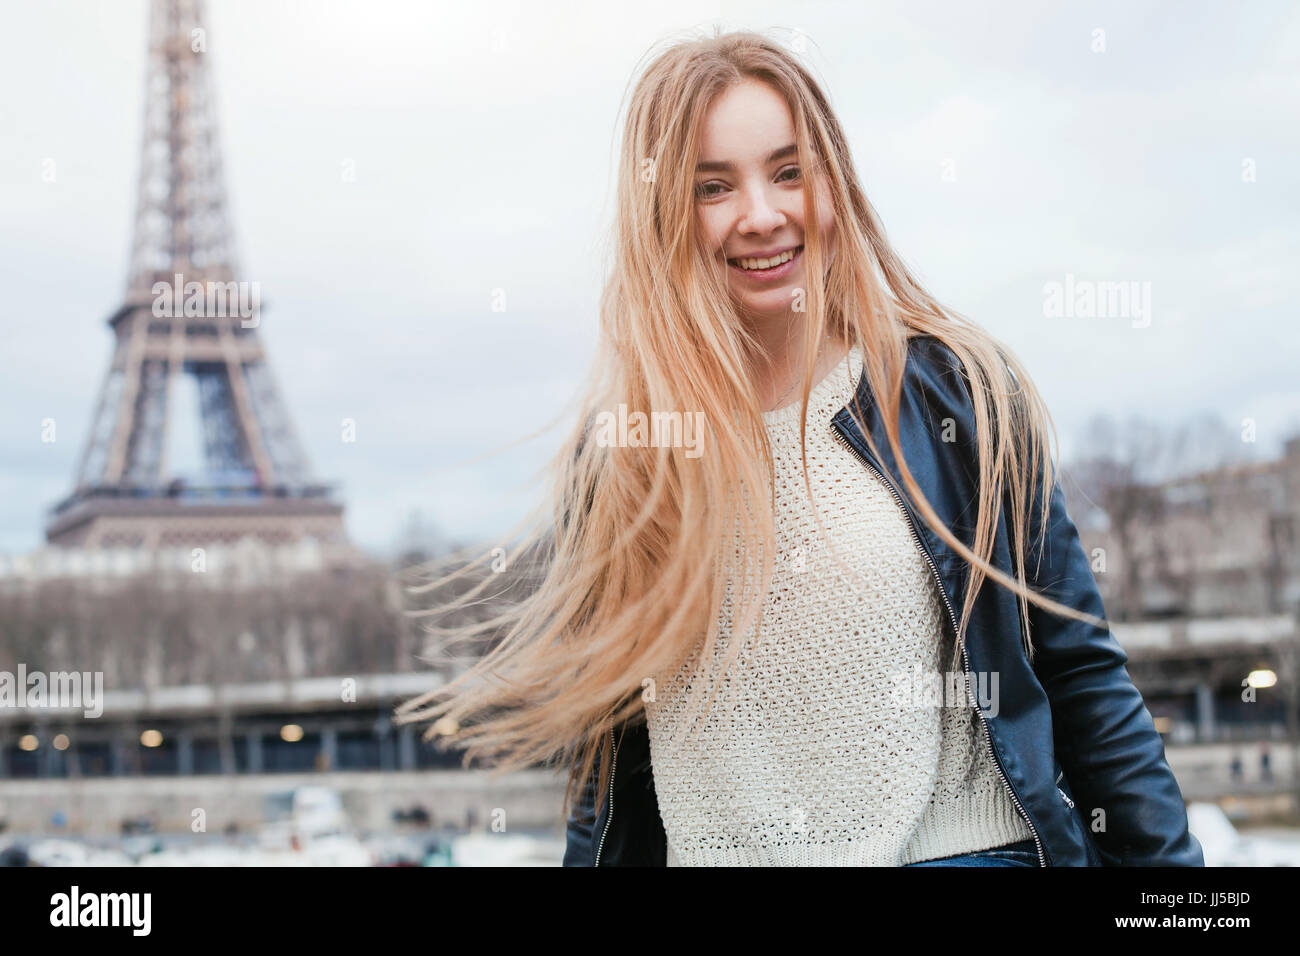 Happy young woman à Paris près de la tour Eiffel, smiling girl portrait voyageant, étudiant en europe Photo Stock